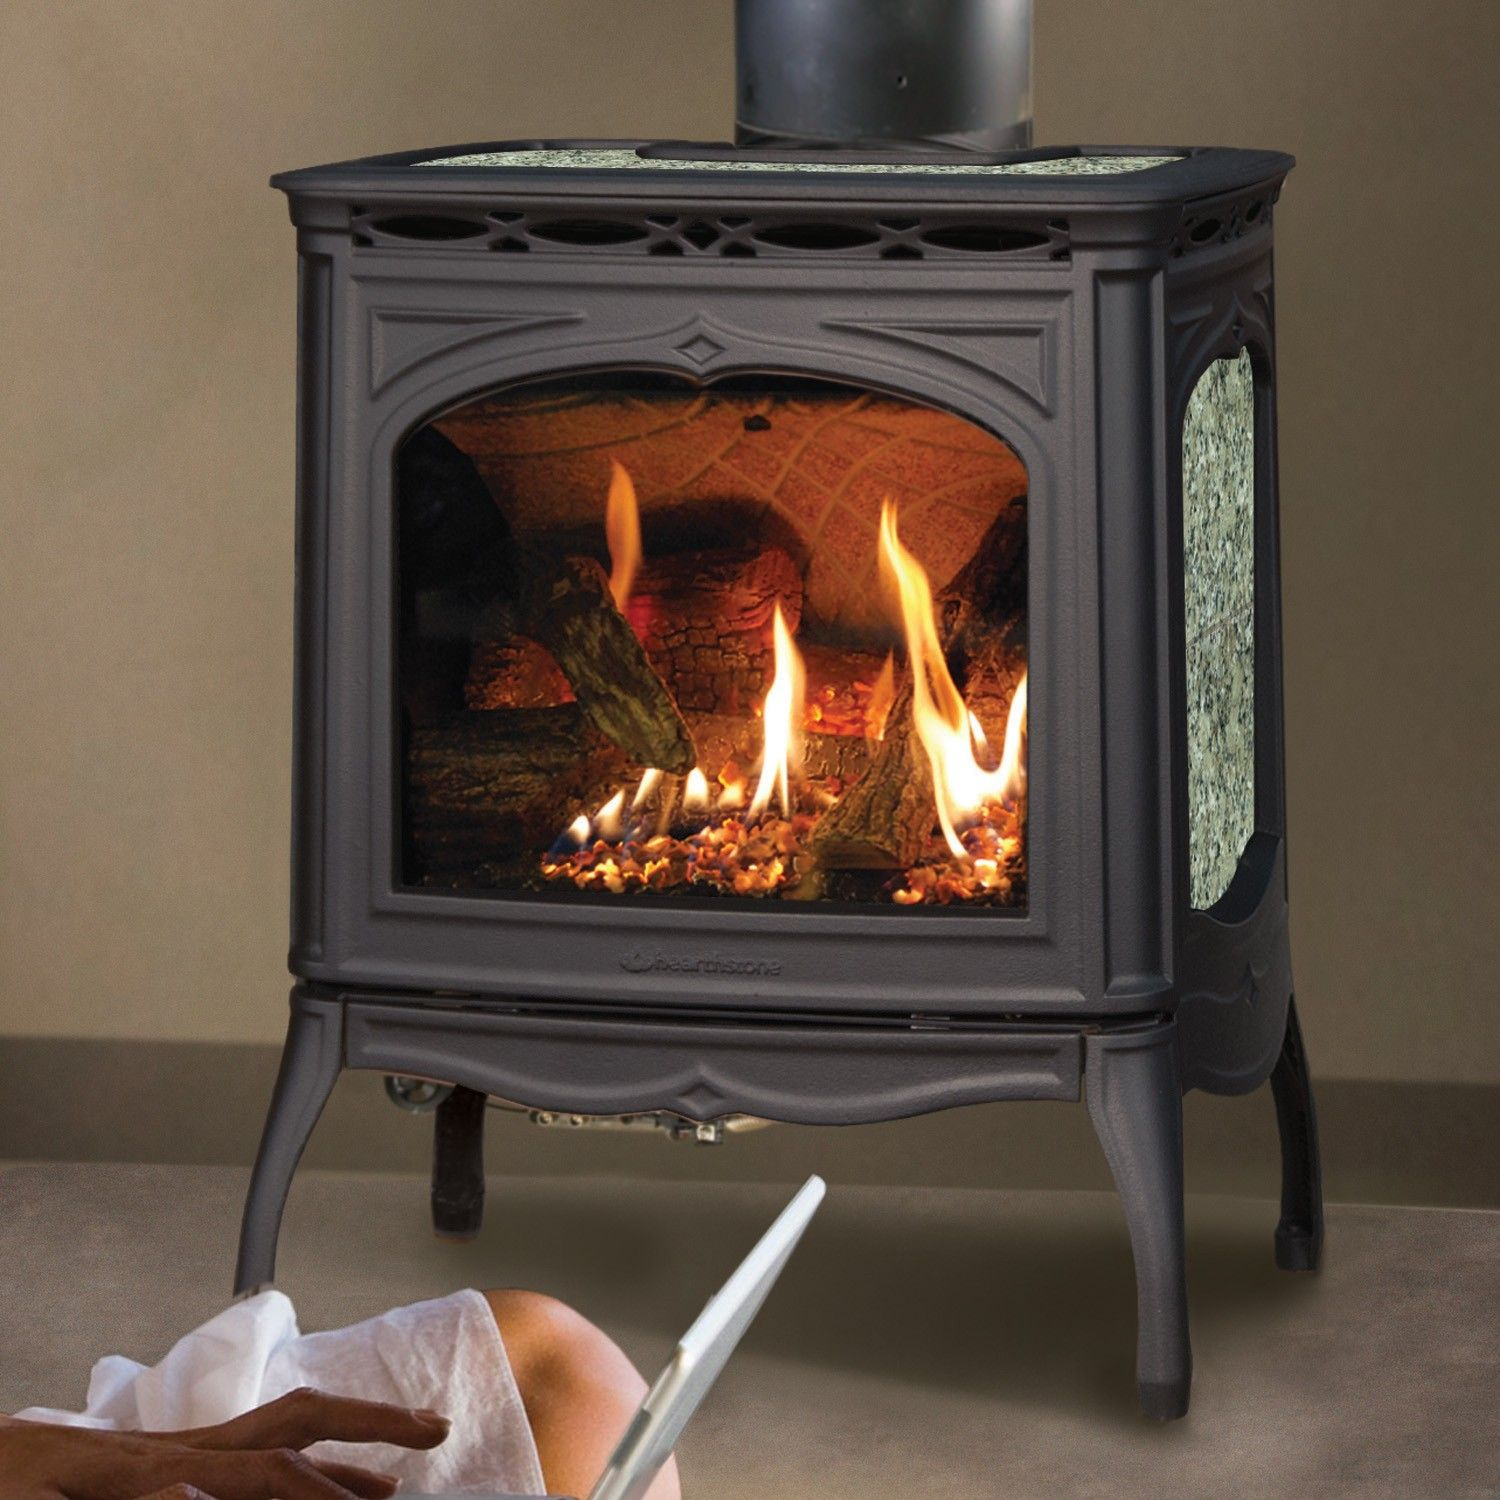 Pin By Rich S For The Home On Gas Stoves Gas Stove Gas Fire Stove Free Standing Gas Stoves